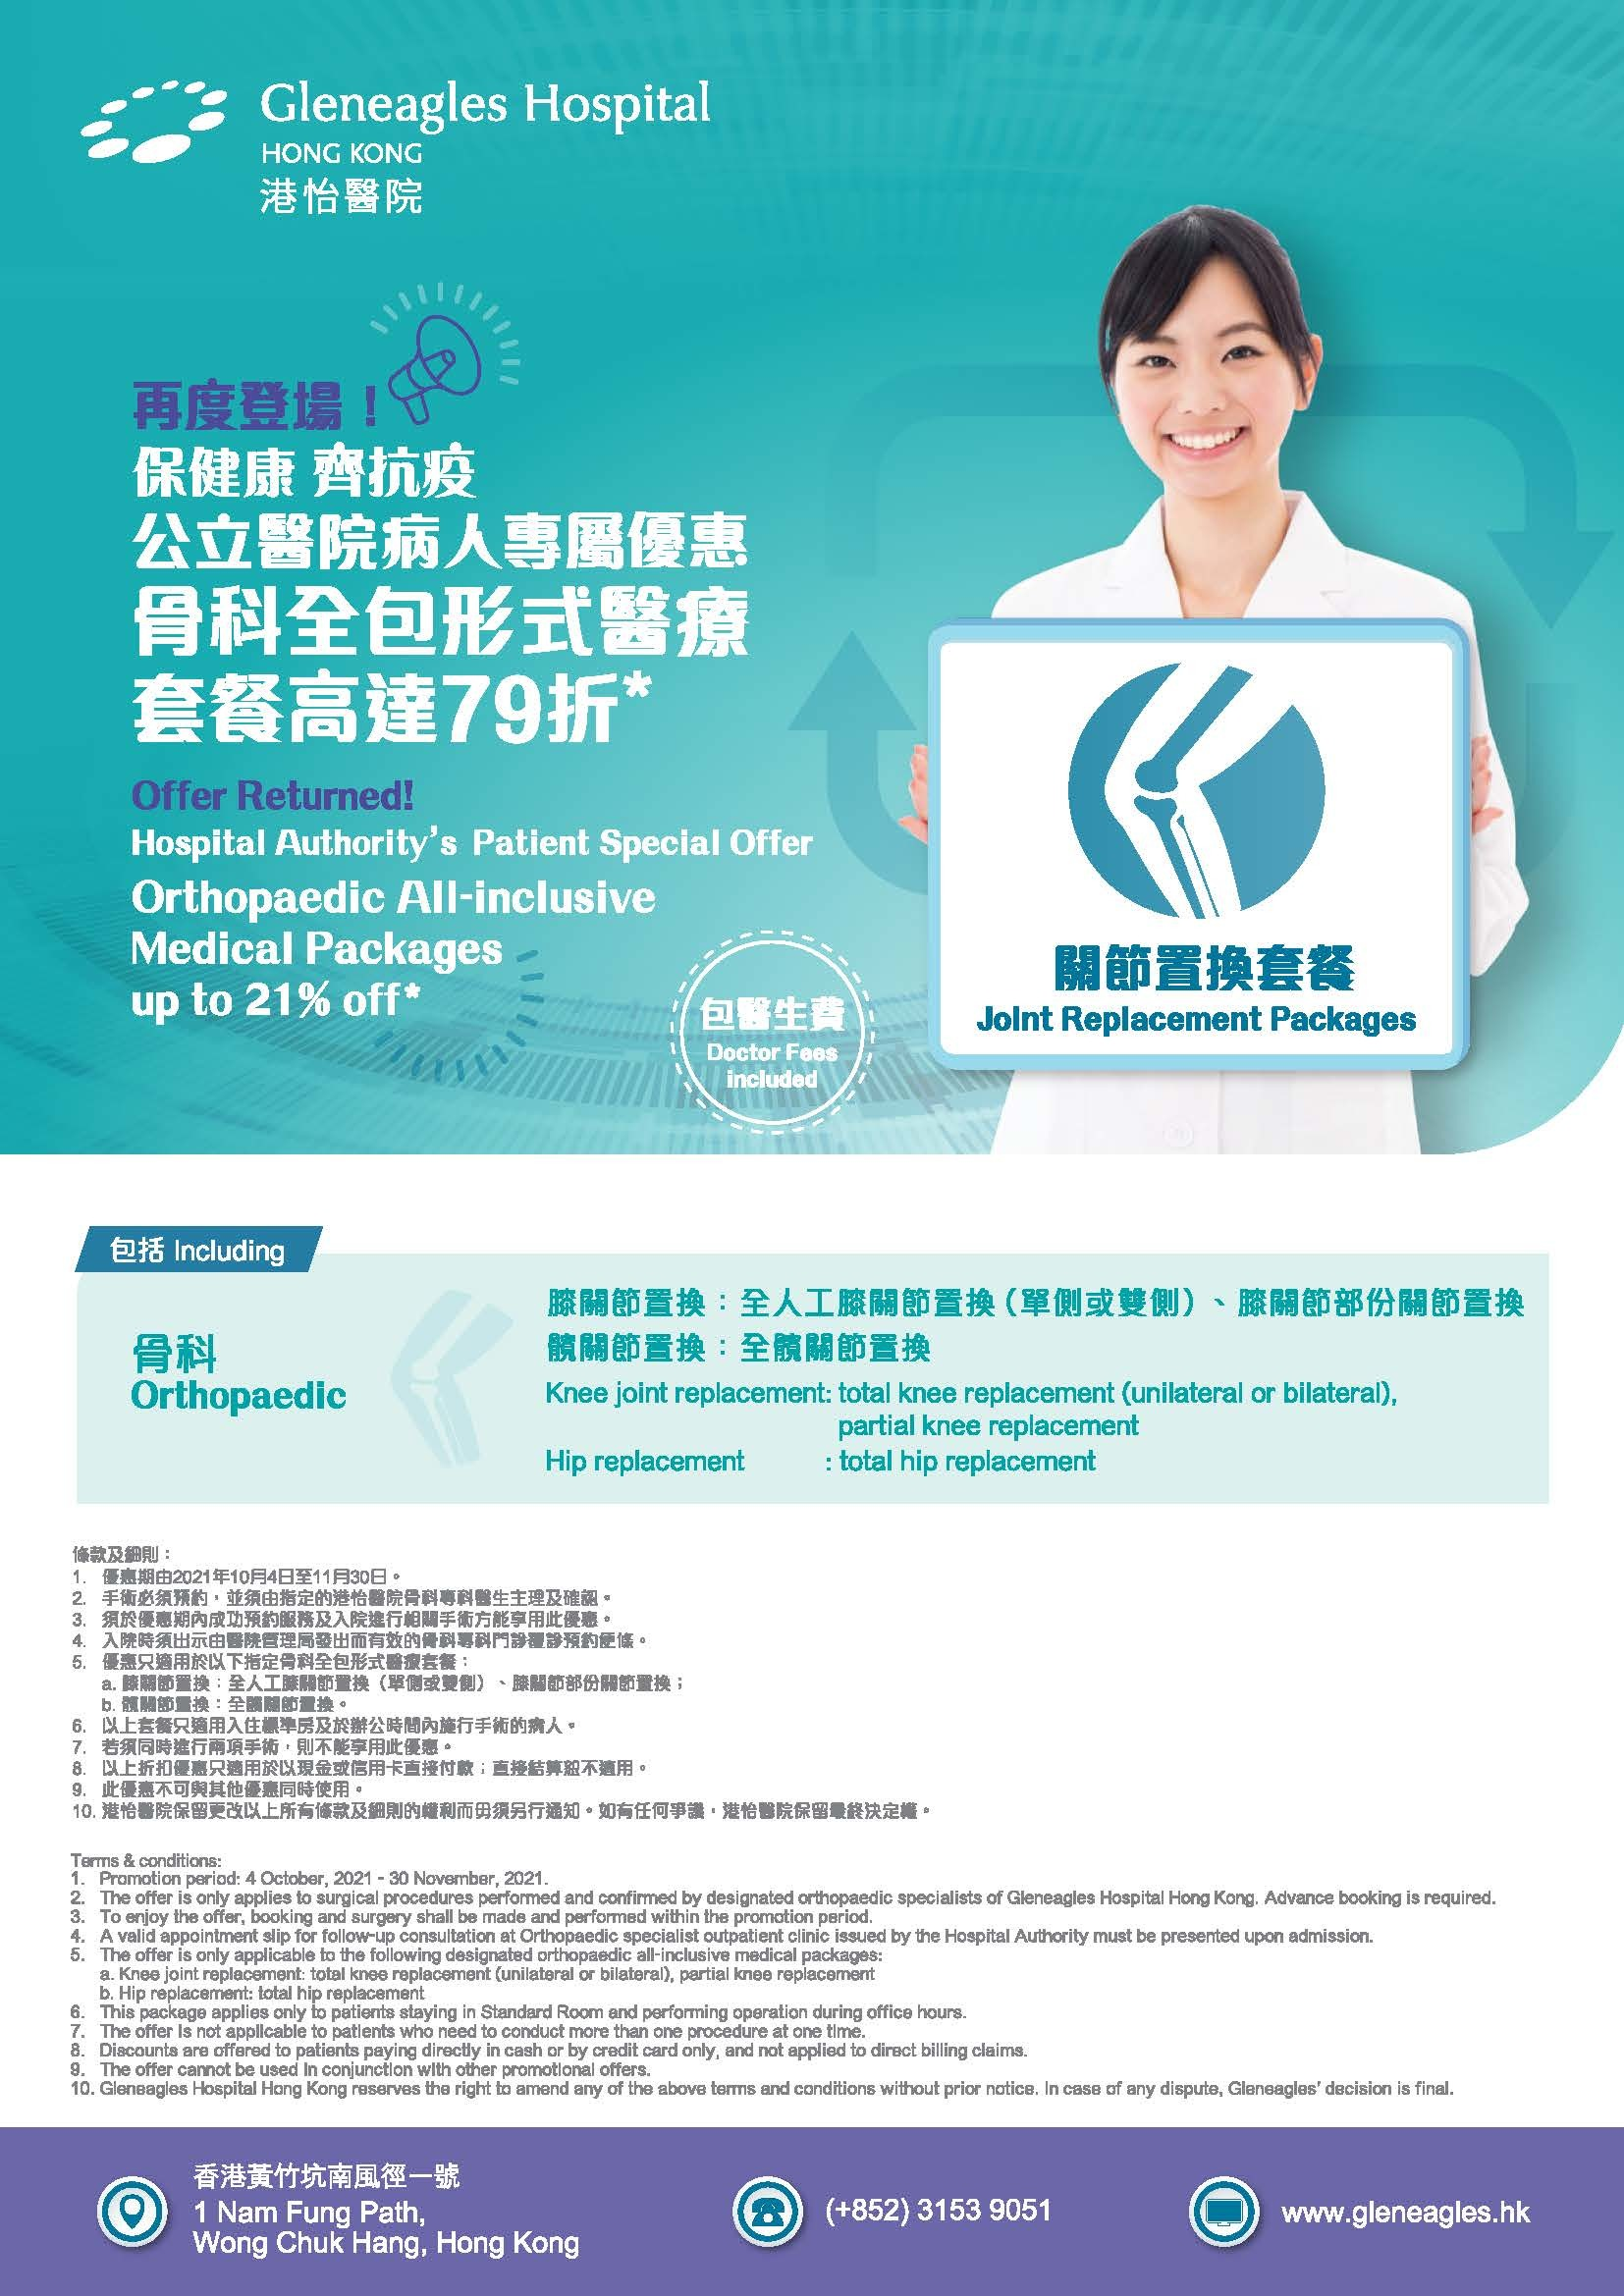 Poster-All-inclusive-medical-package-for-HA-patients-Joint-ReplacementsOct-Nov-2021.jpg#asset:236196:url